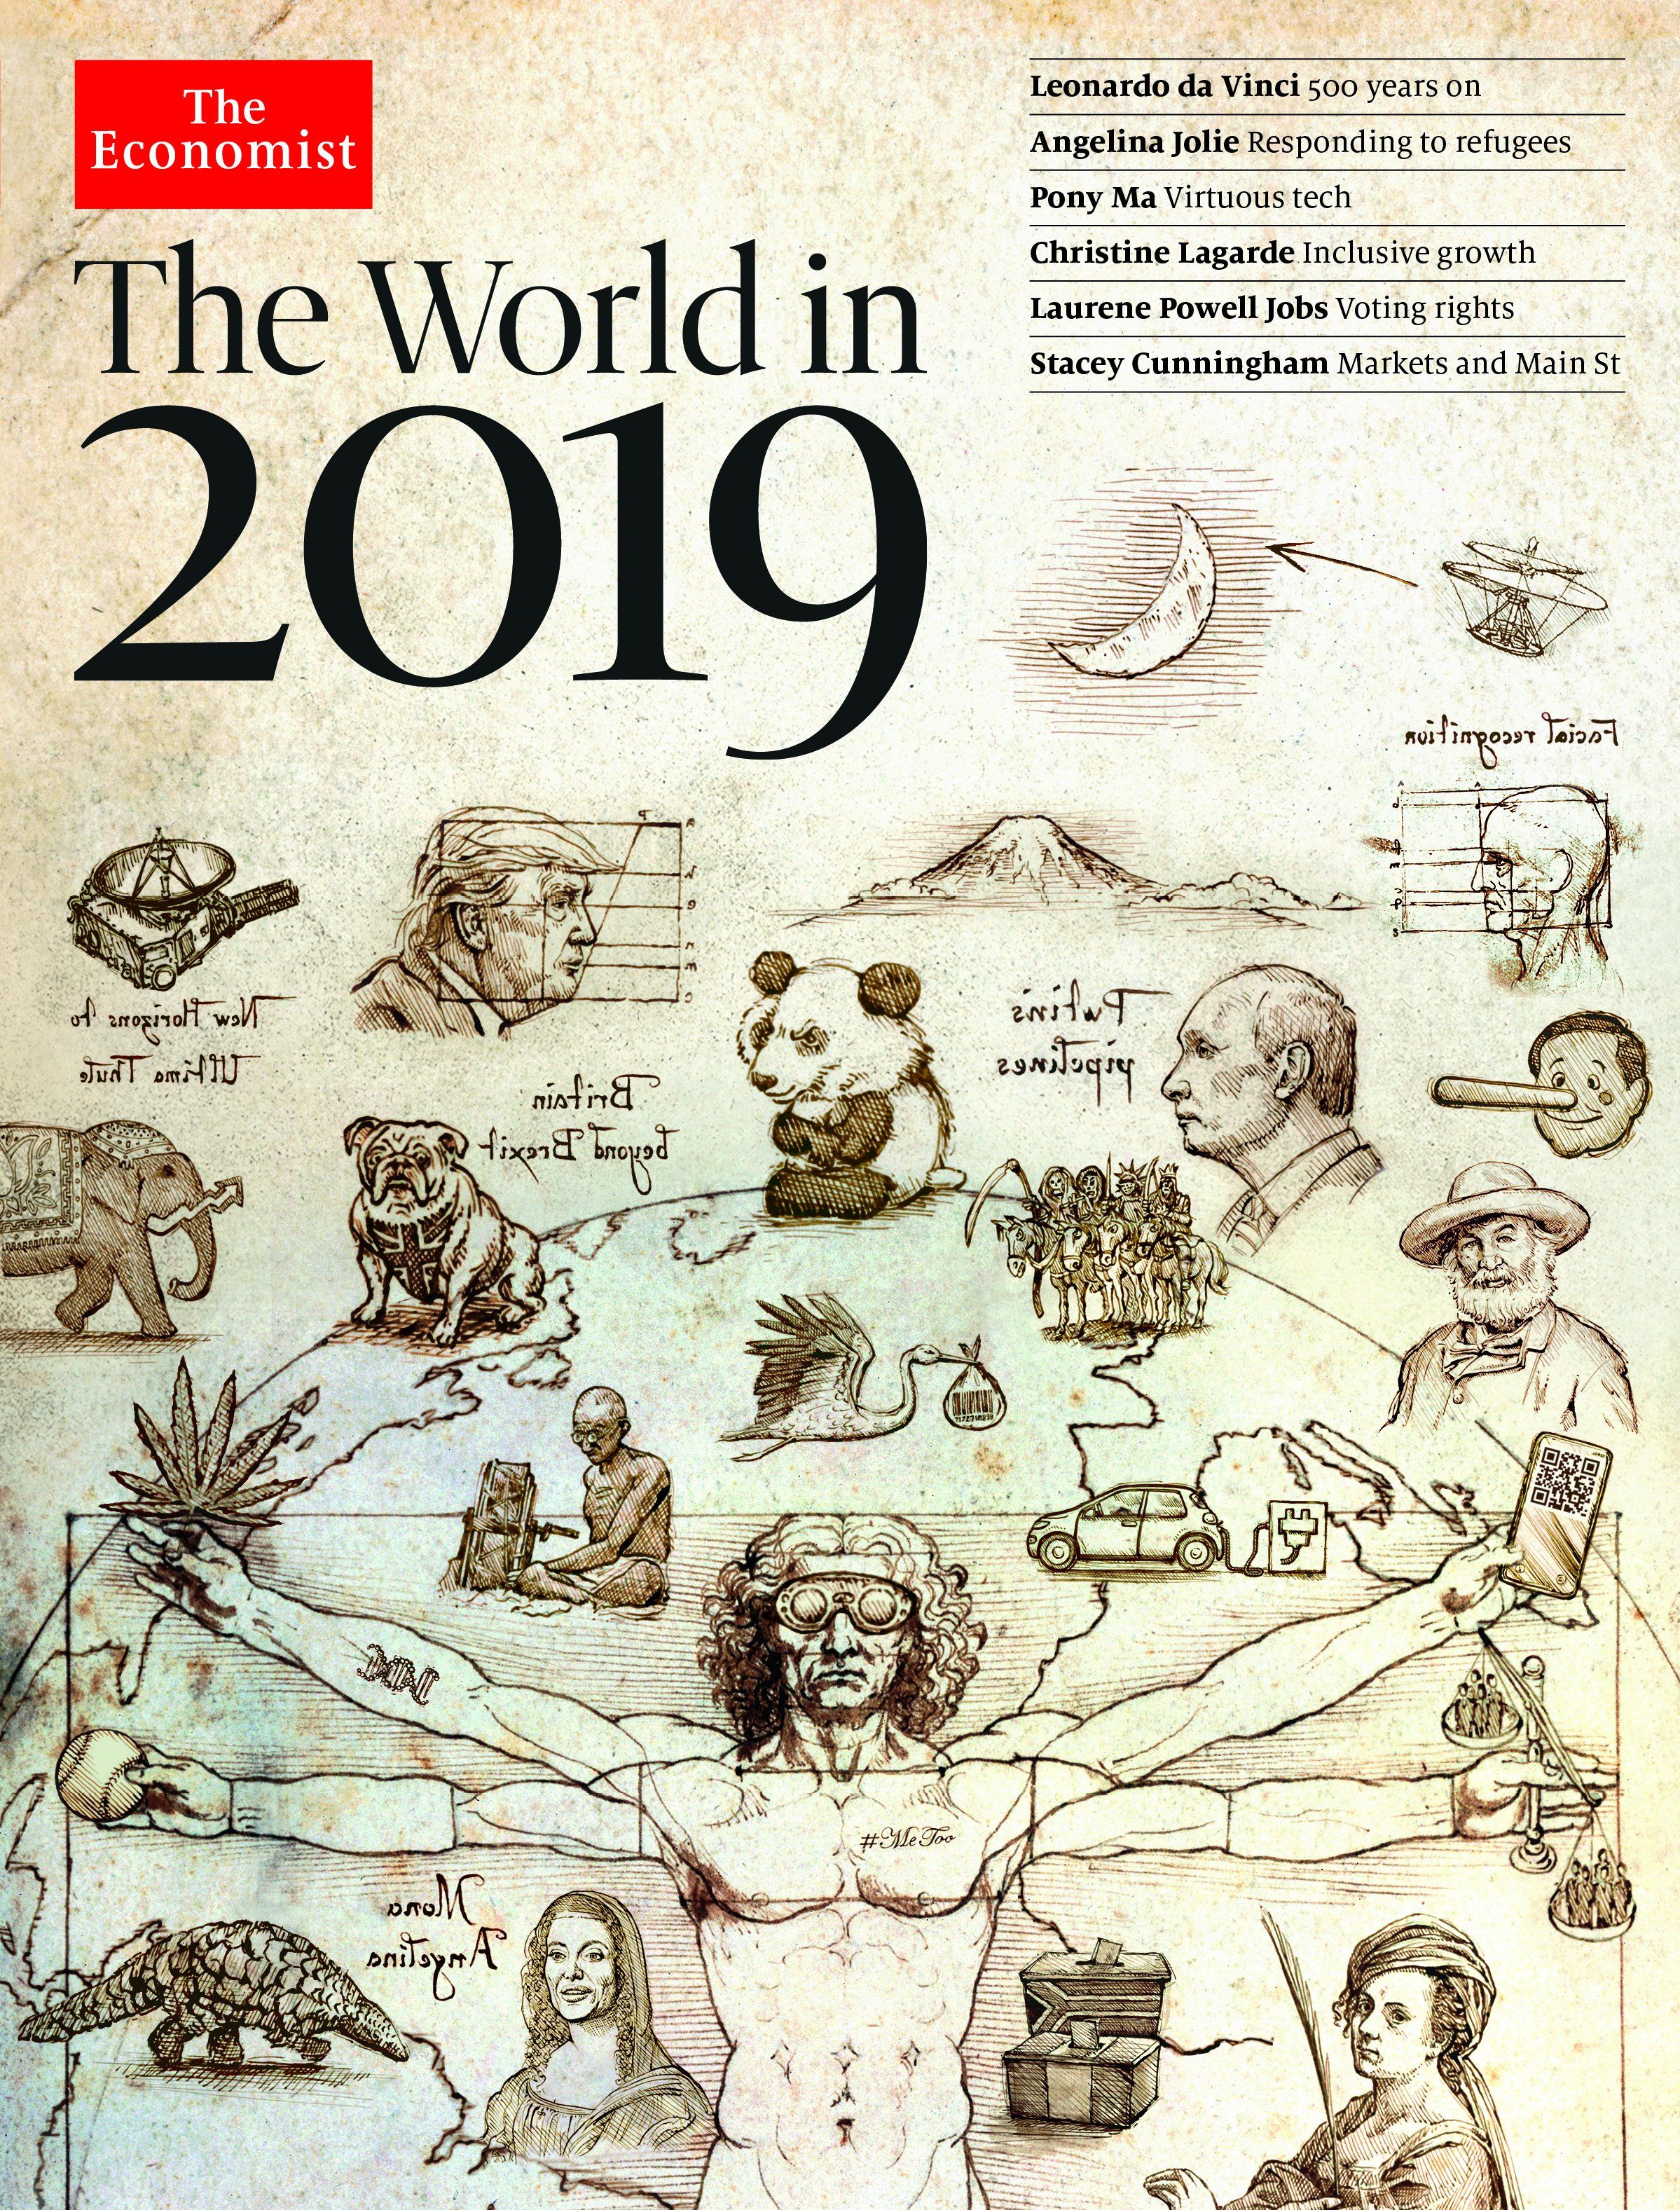 The Economist - The world in 2019